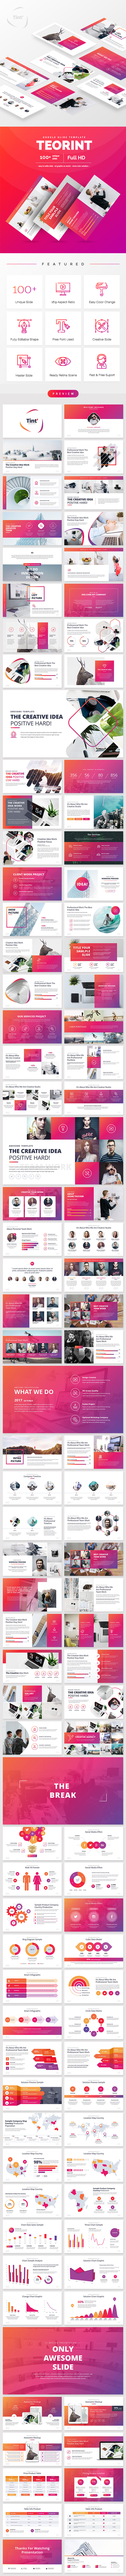 GraphicRiver Teorint Google Slide Template 20955647